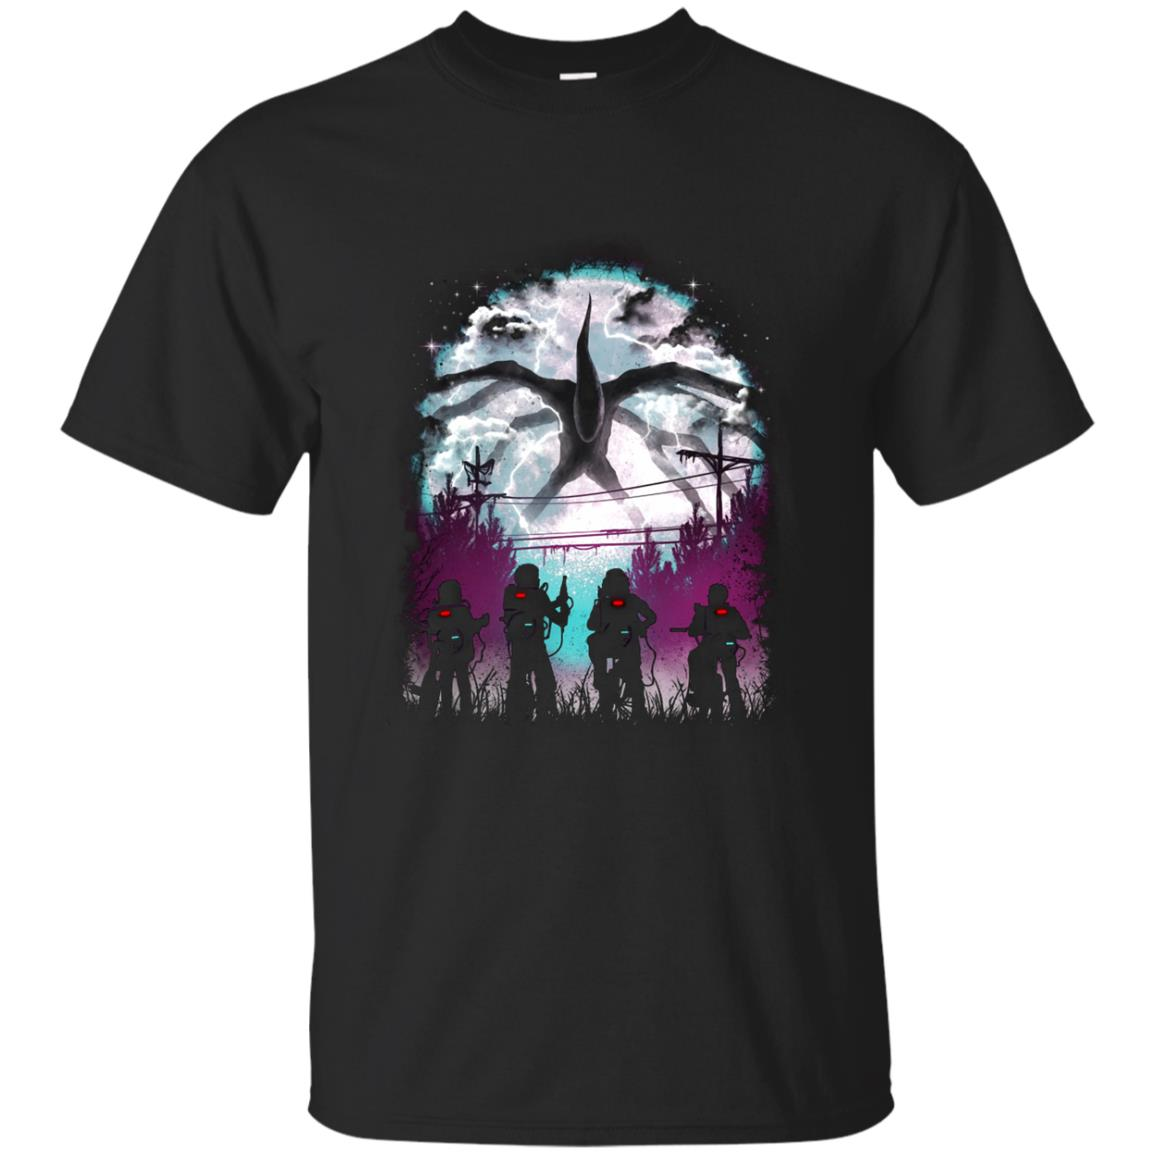 Demogorgon T-shirt - black